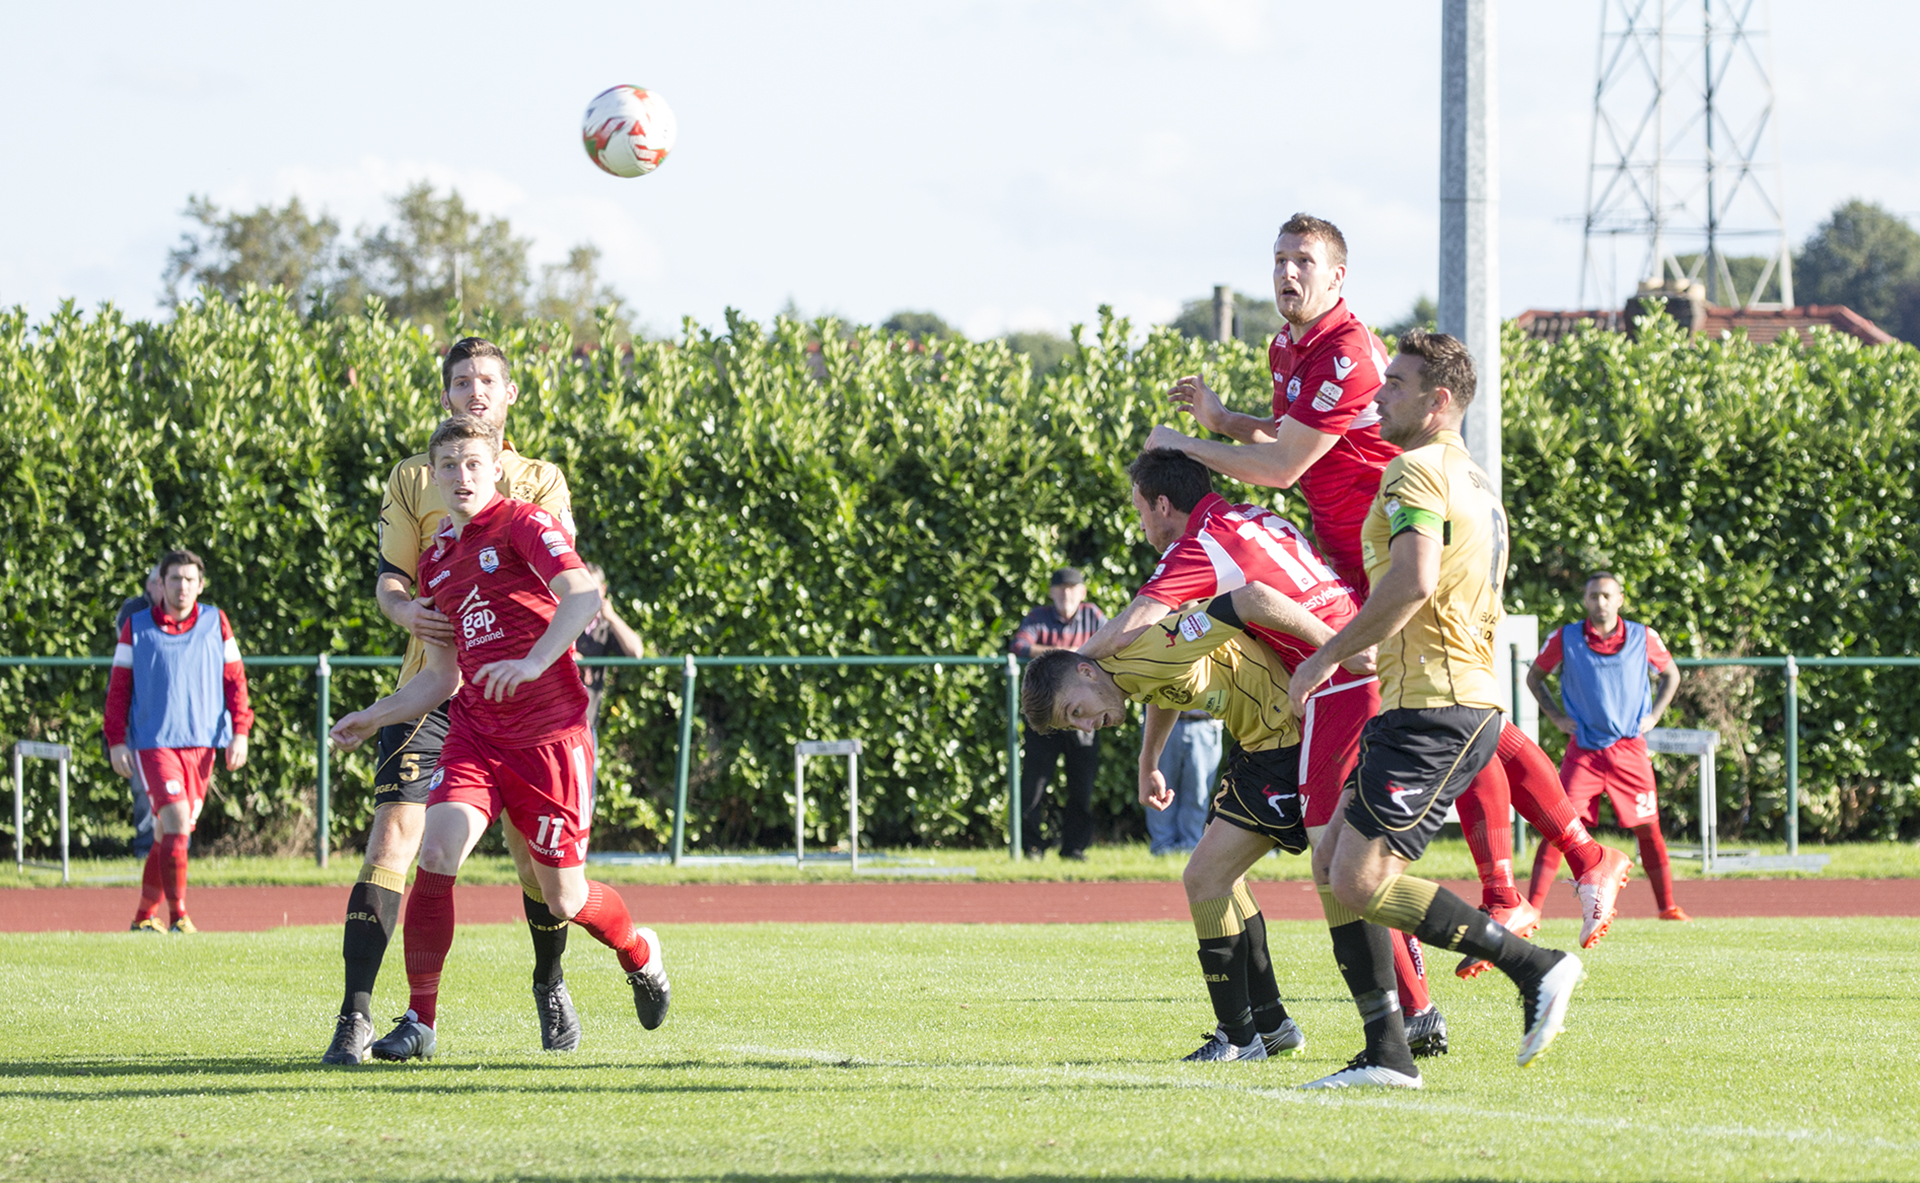 Les Davies heads on target for The Nomads - © NCM Media